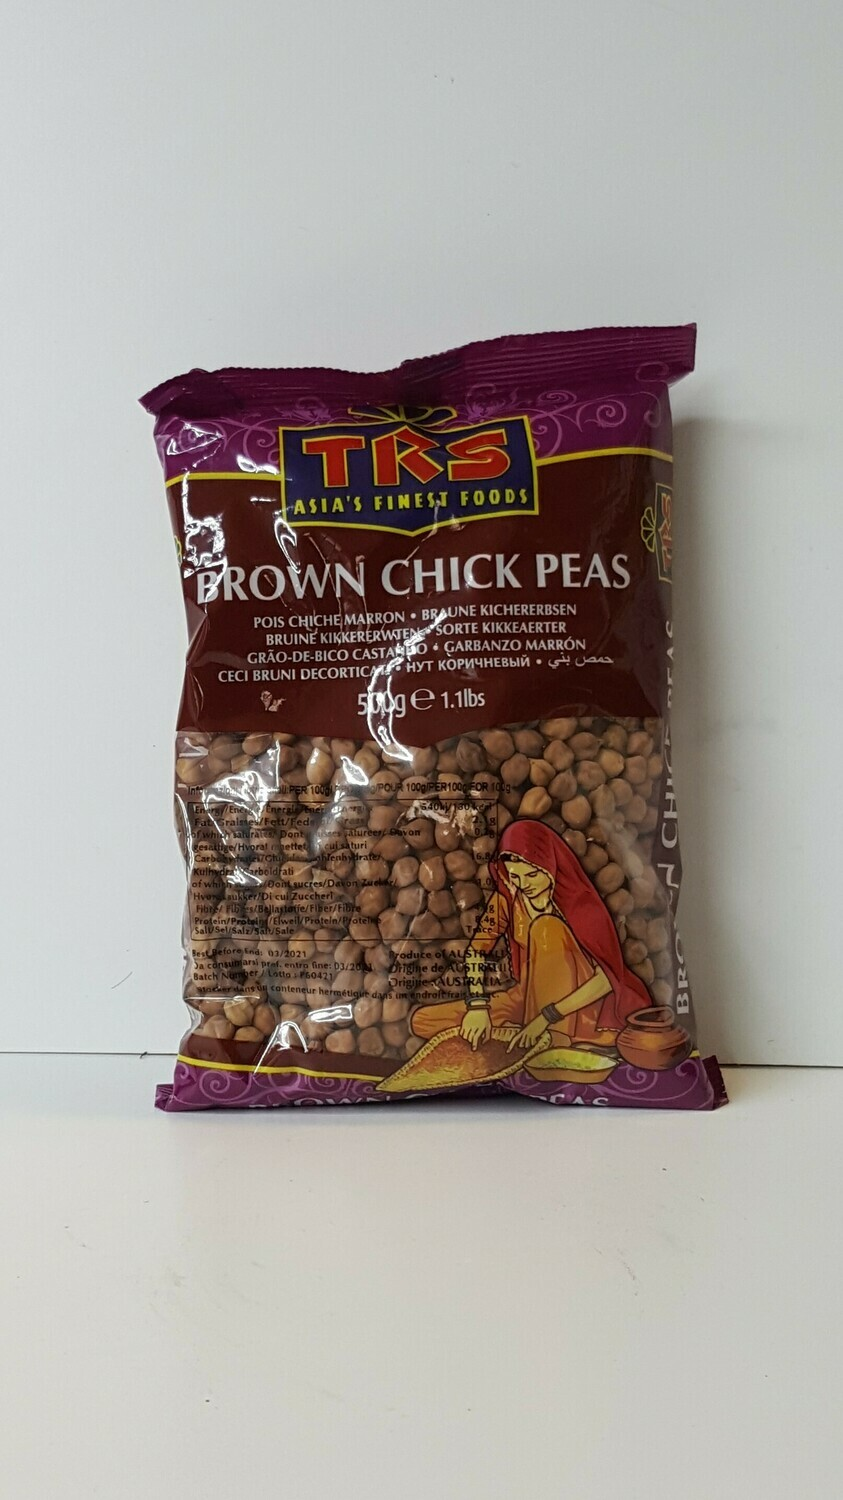 Brown Chick Peas TRS 500 g